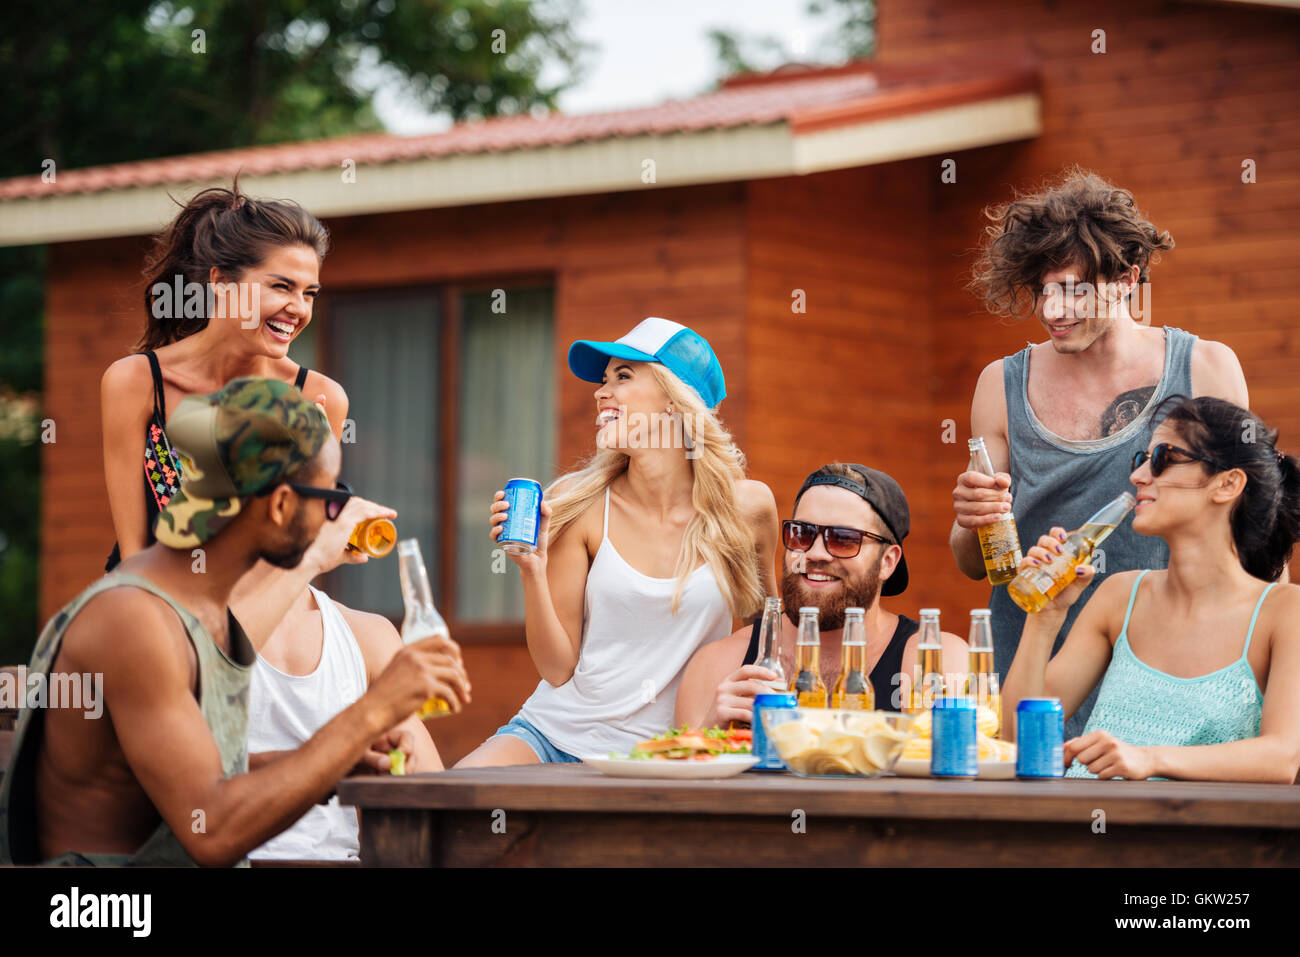 Group of cheerful young people drinking beer and soda and laughing outdoors - Stock Image